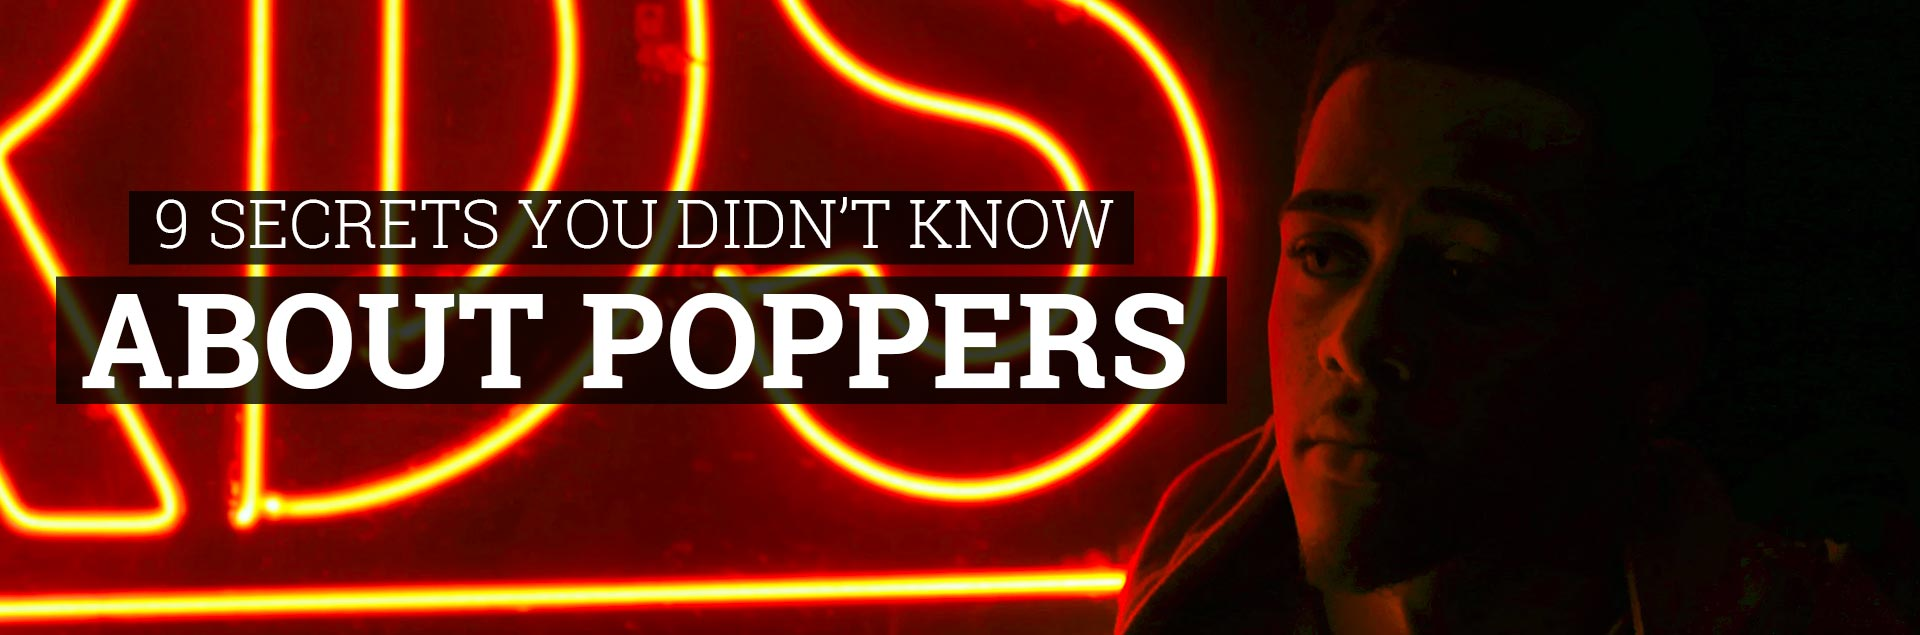 Explore the amazing world of poppers and Best Poppers Tips also 9 secrets You Didn't Know About Poppers.